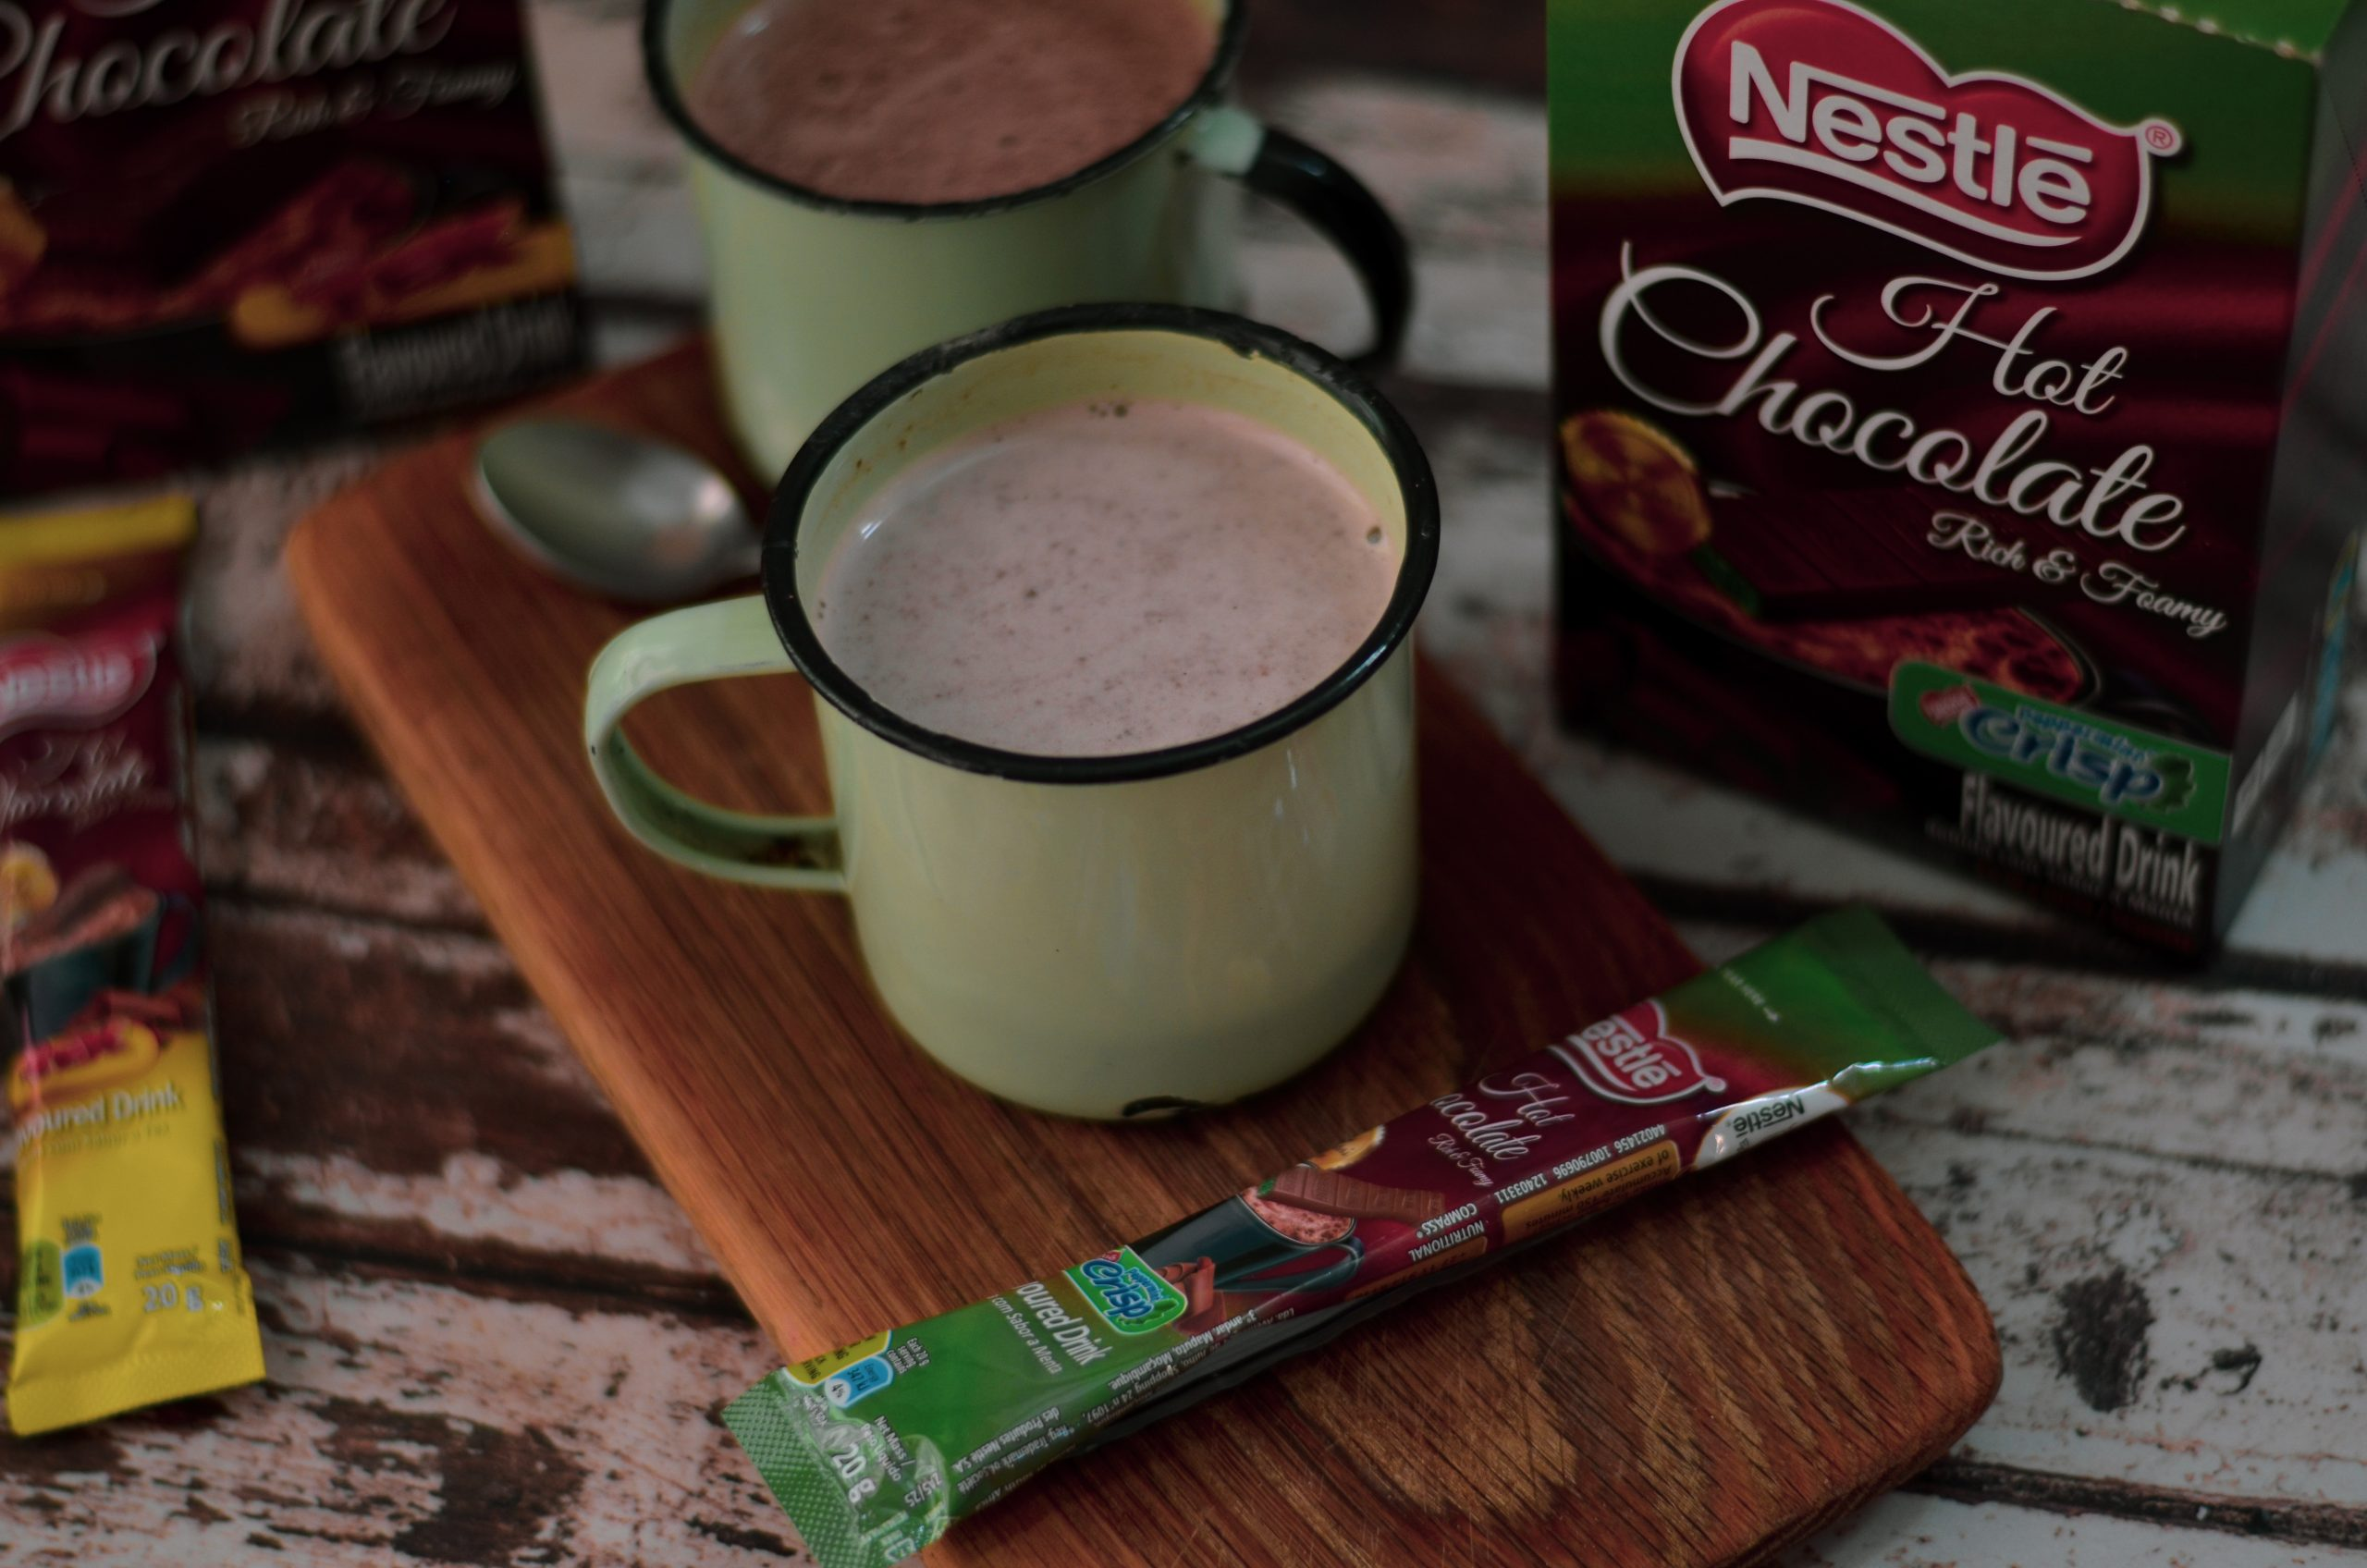 Big news for chocolate lovers: We taste the brand new Peppermint Crisp and Tex flavoured hot chocolates